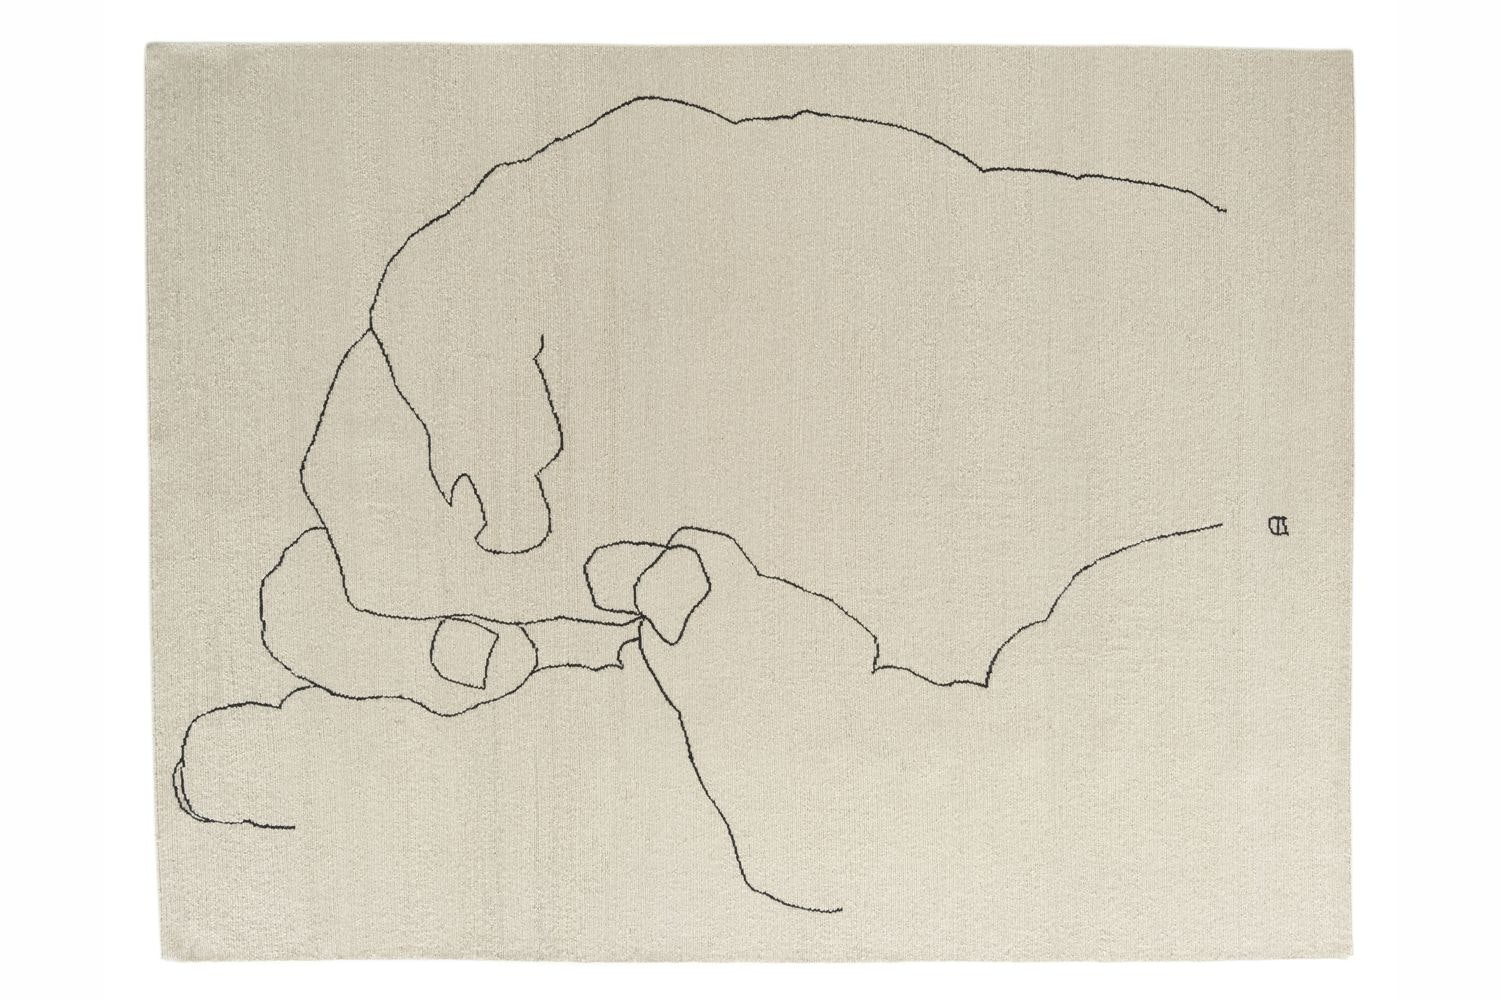 Mano 1993 by Eduardo Chillida for Nanimarquina